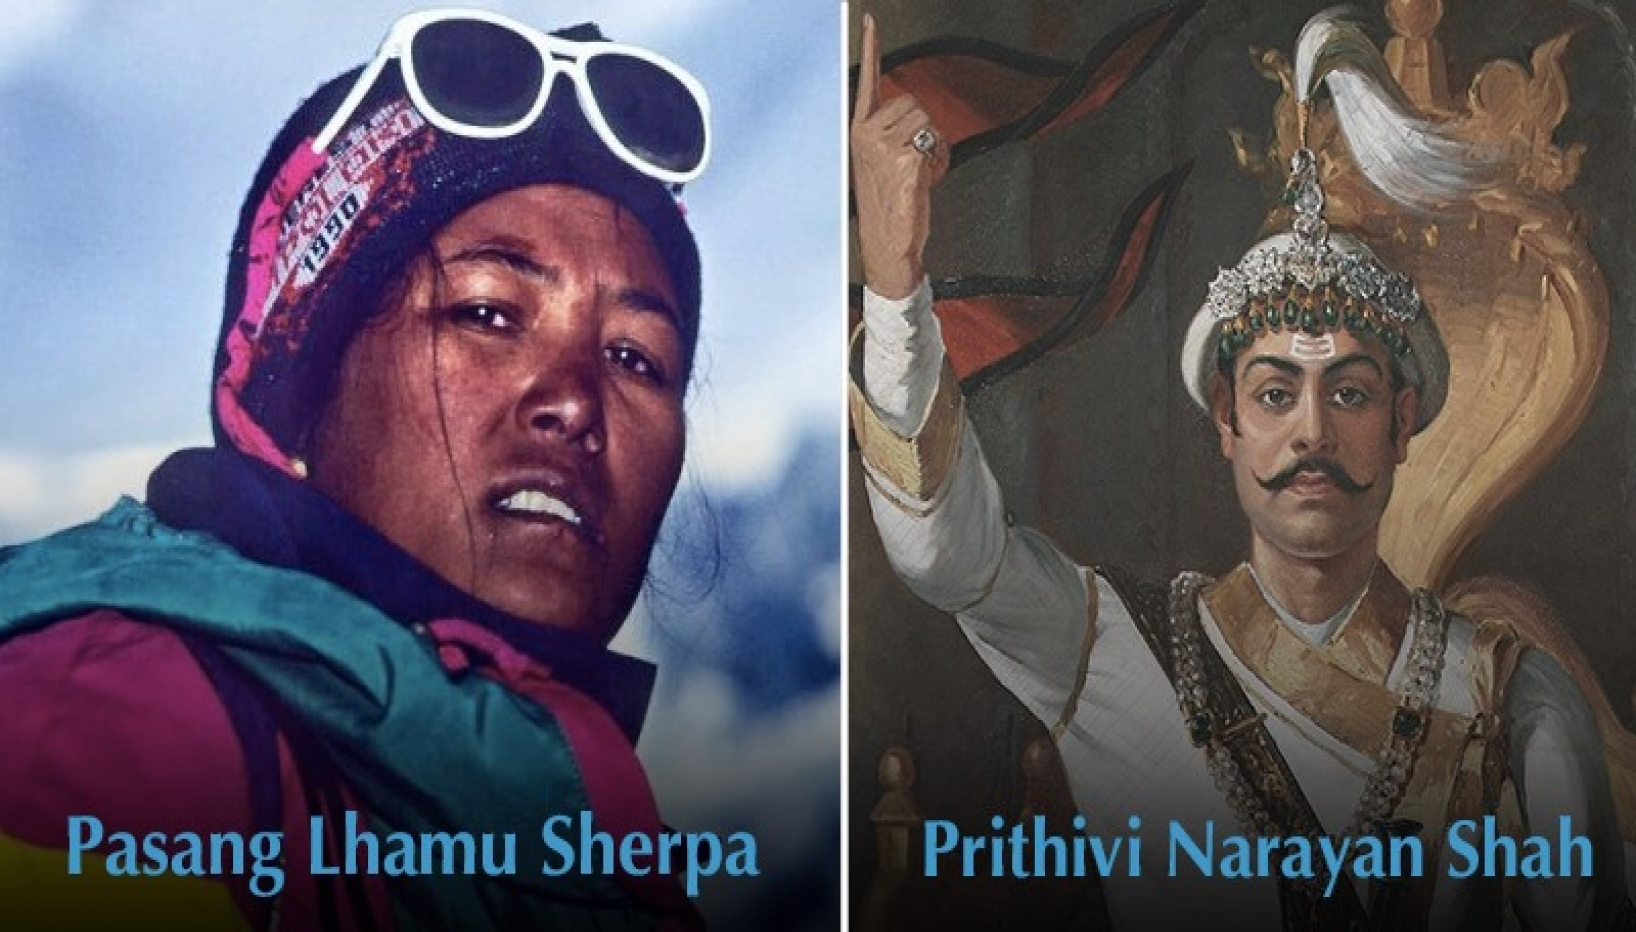 A woman on a mountain and a king picture side by side